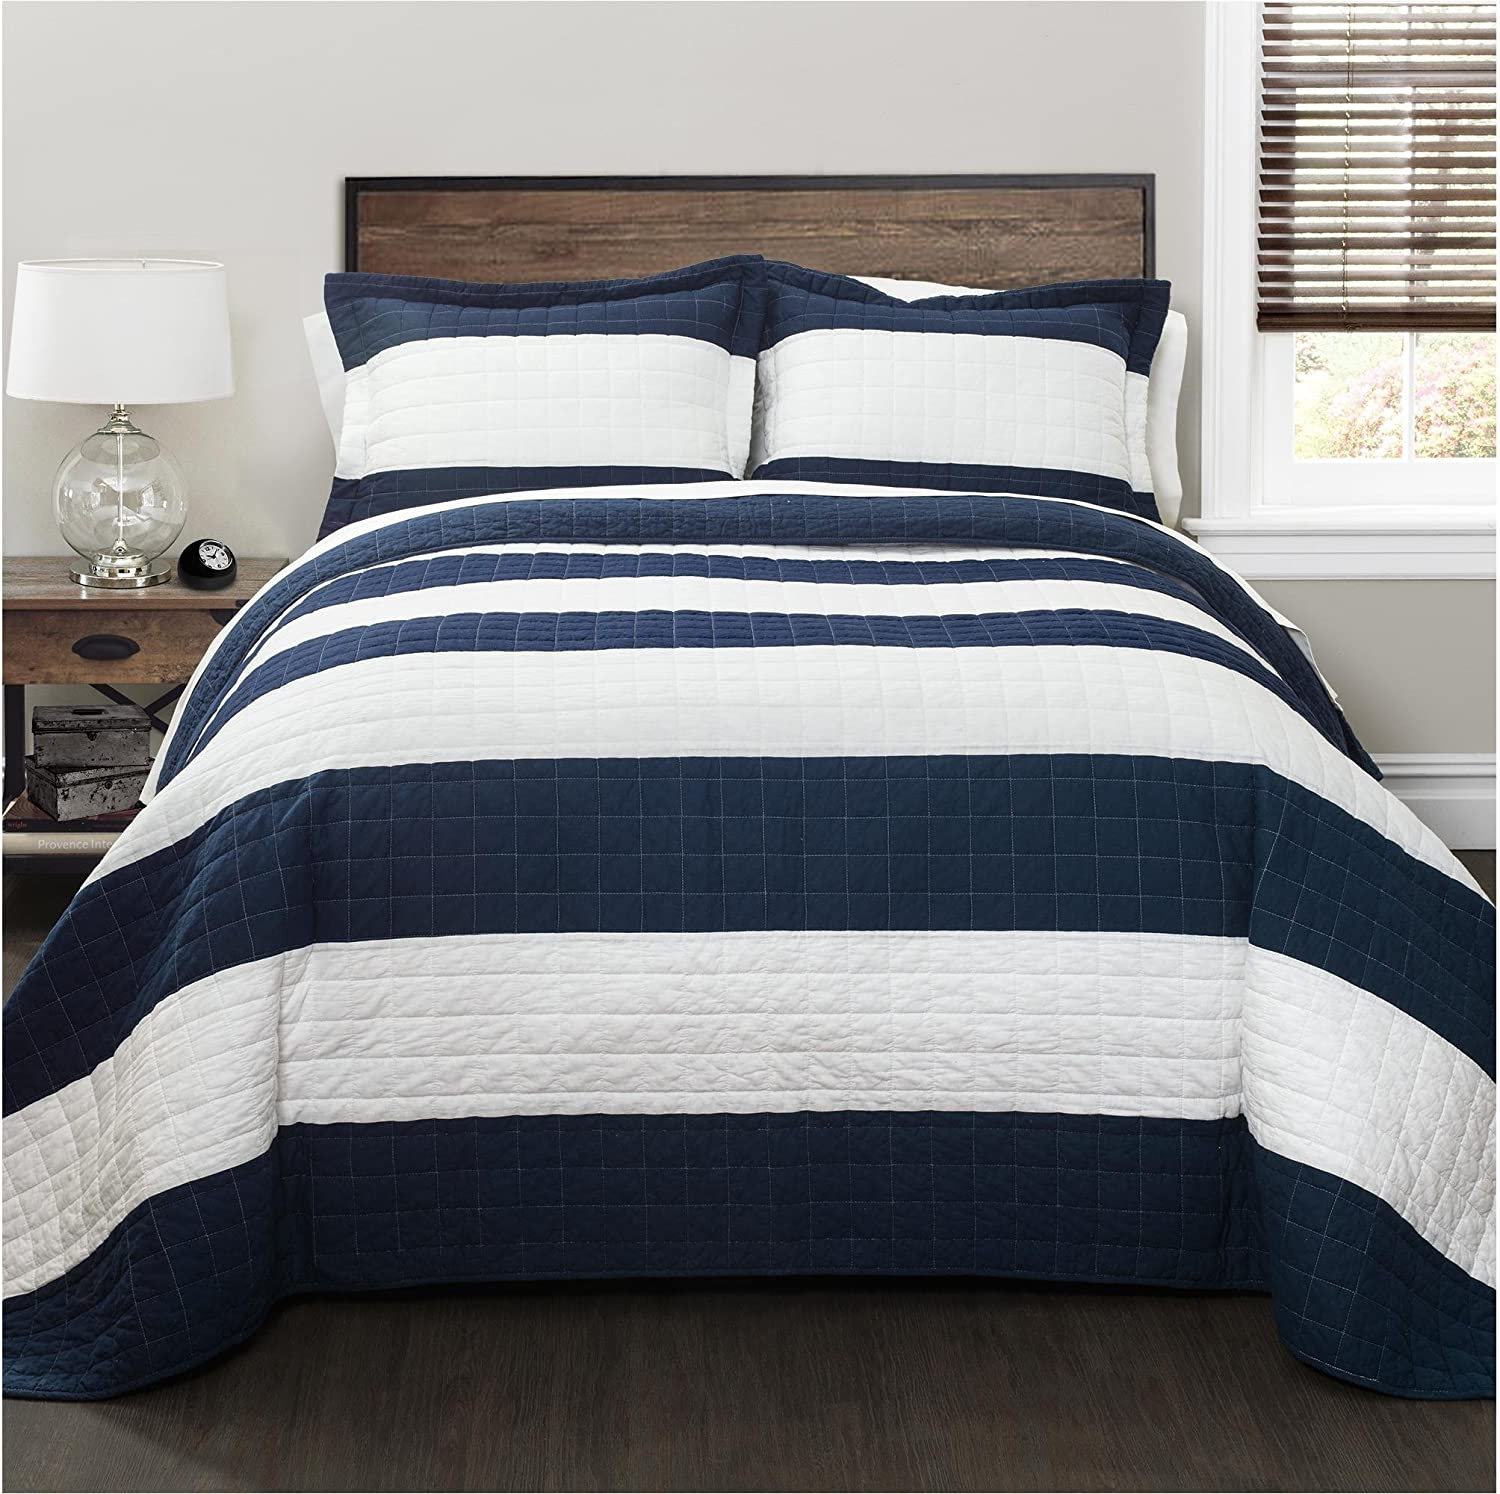 Lush Decor New Berlin Quilt Striped Pattern 3 Piece Bedding Set King Navy And White Home Kitchen